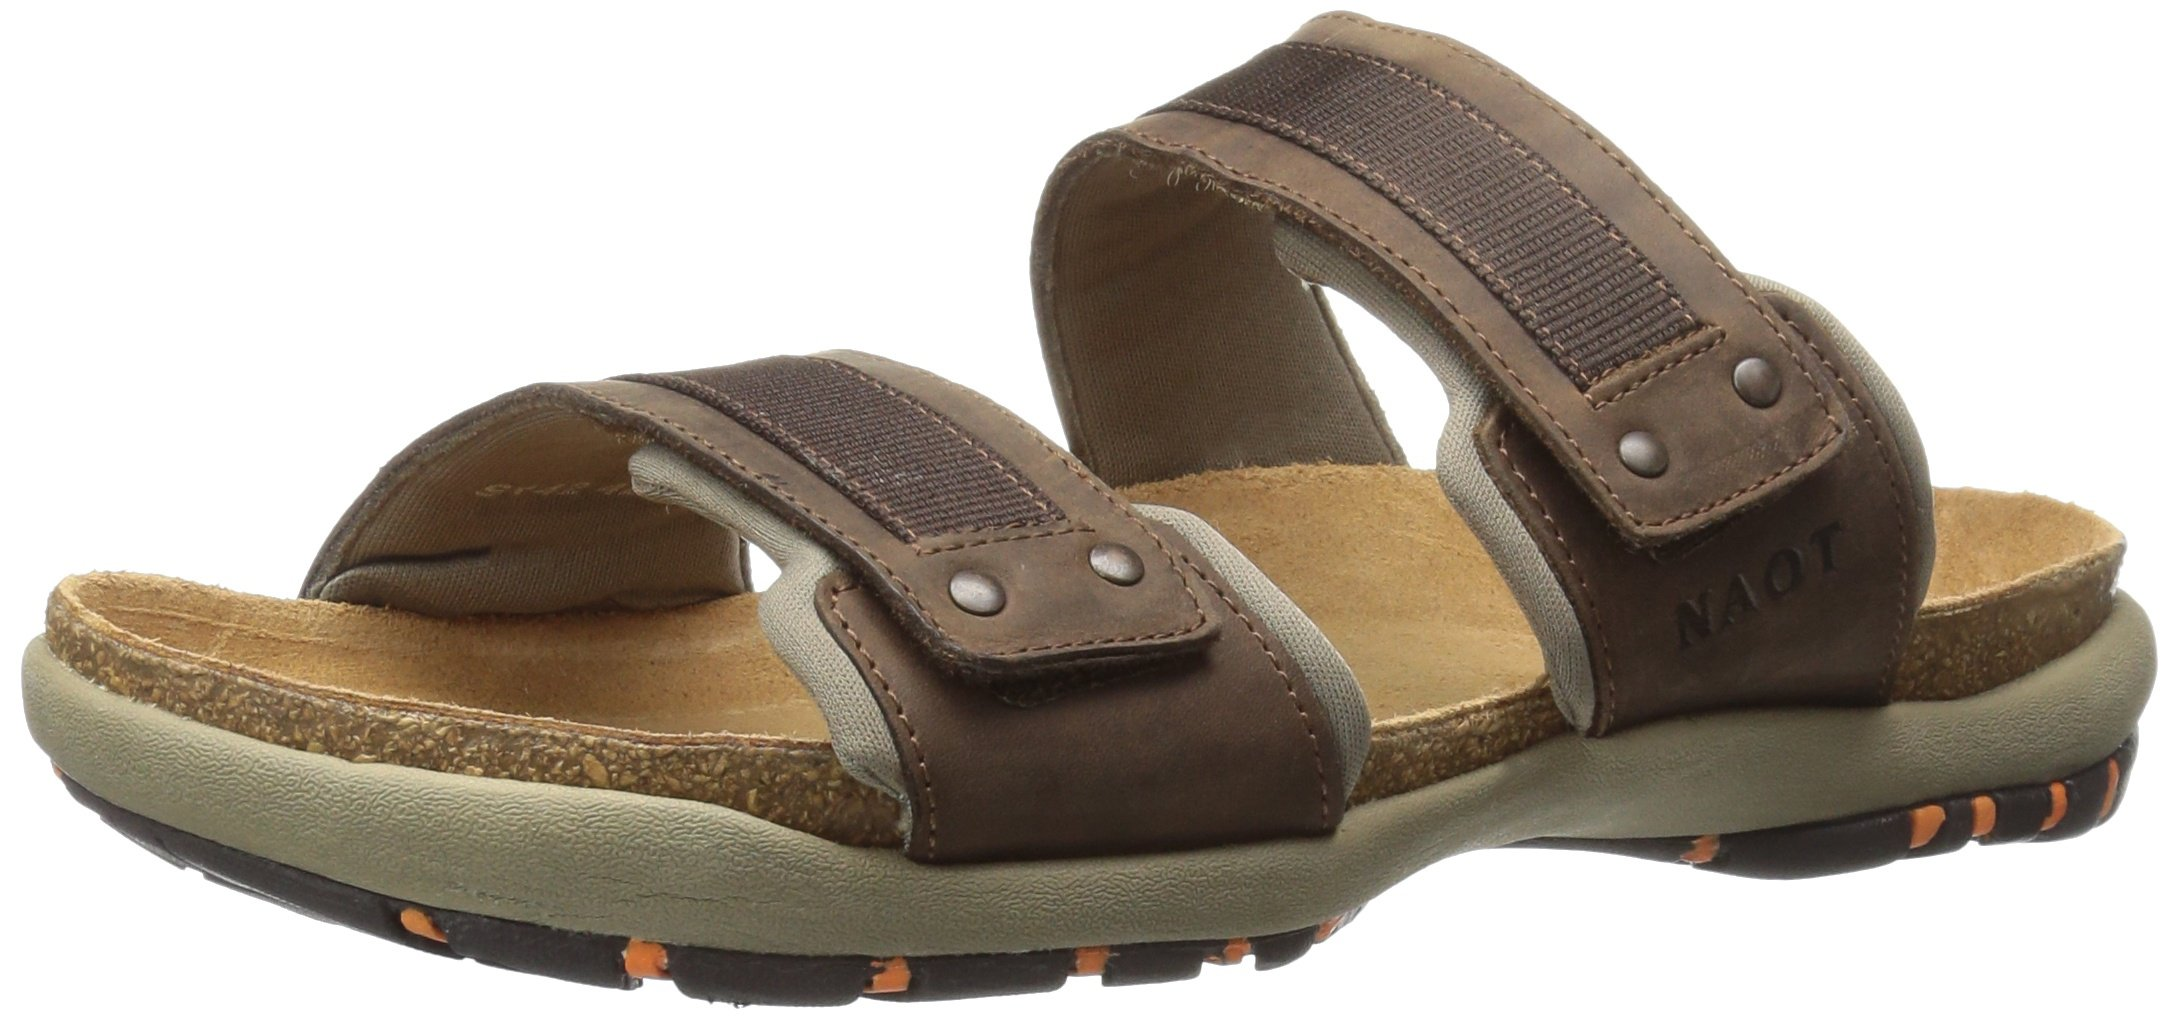 Naot Men's Climb Flat Sandal, Brown, 43 EU/10 M US